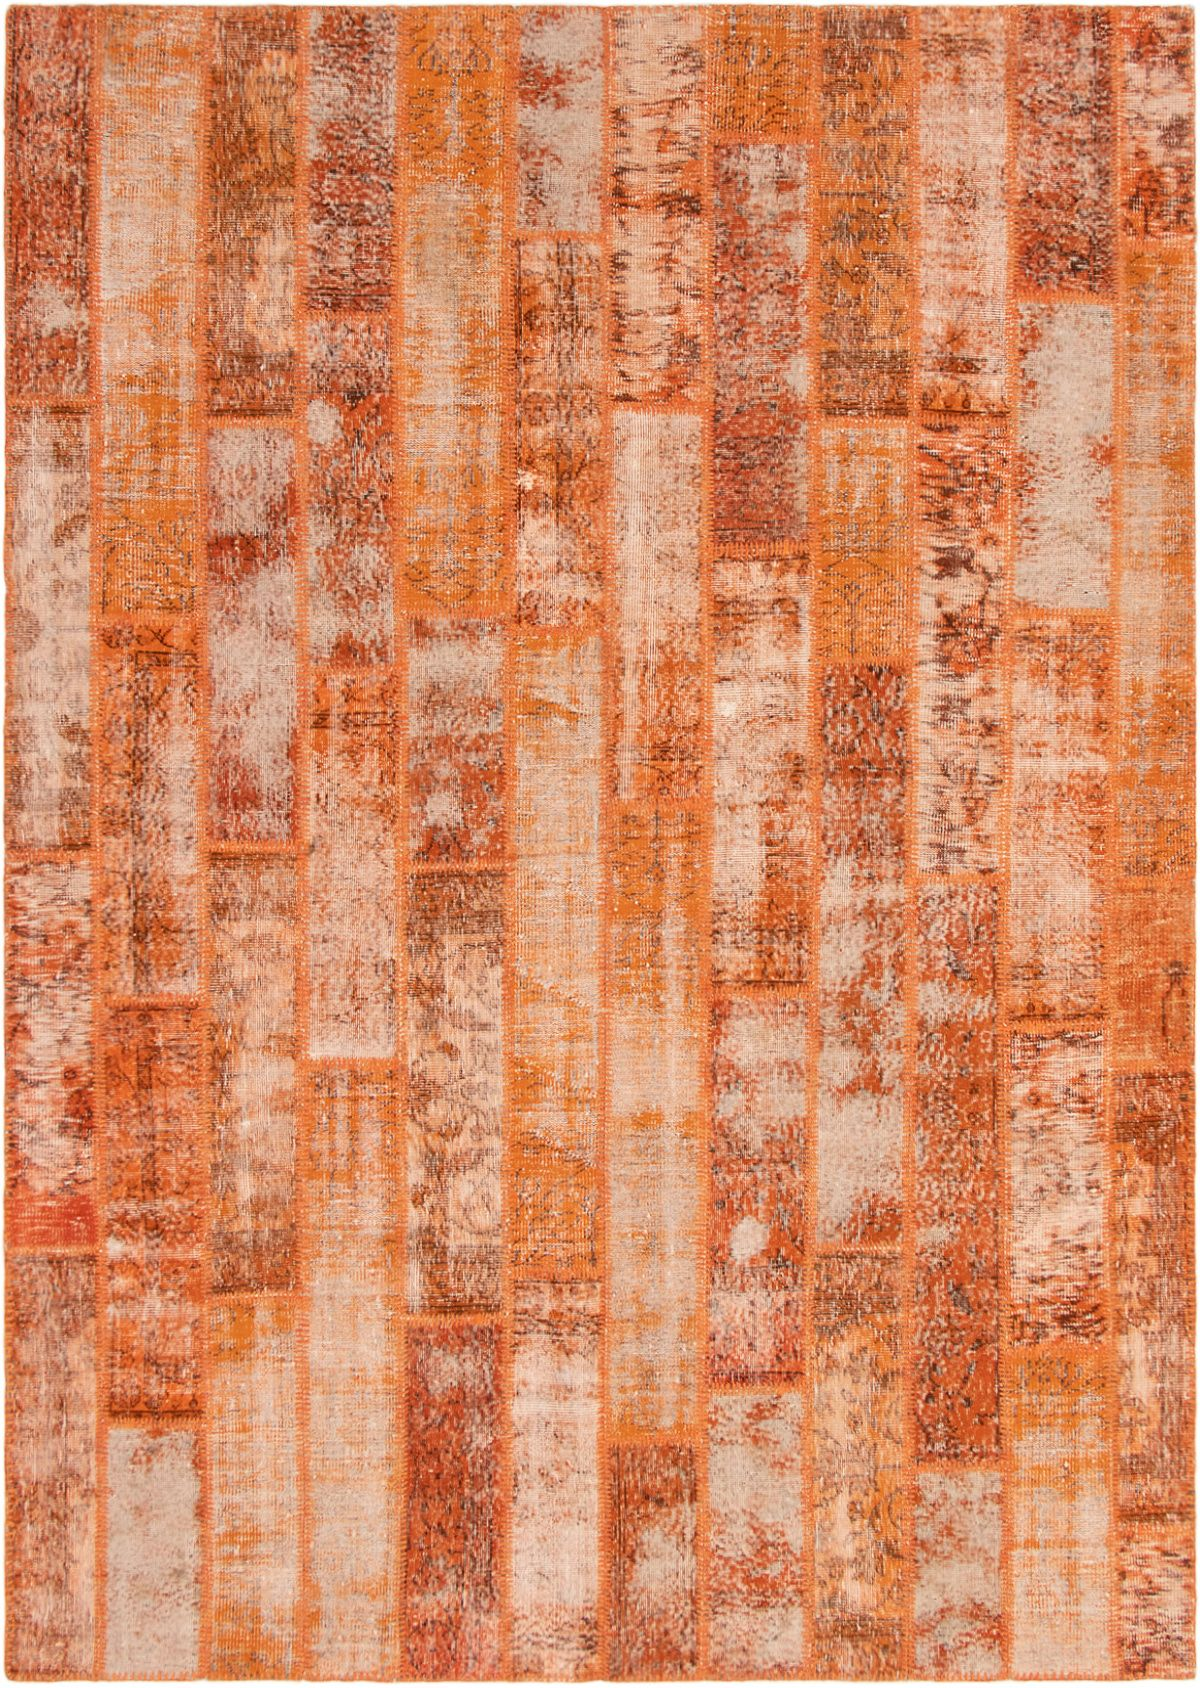 """Hand-knotted Color Transition Patch Orange Wool Rug 7'10"""" x 11'2"""" Size: 7'10"""" x 11'2"""""""